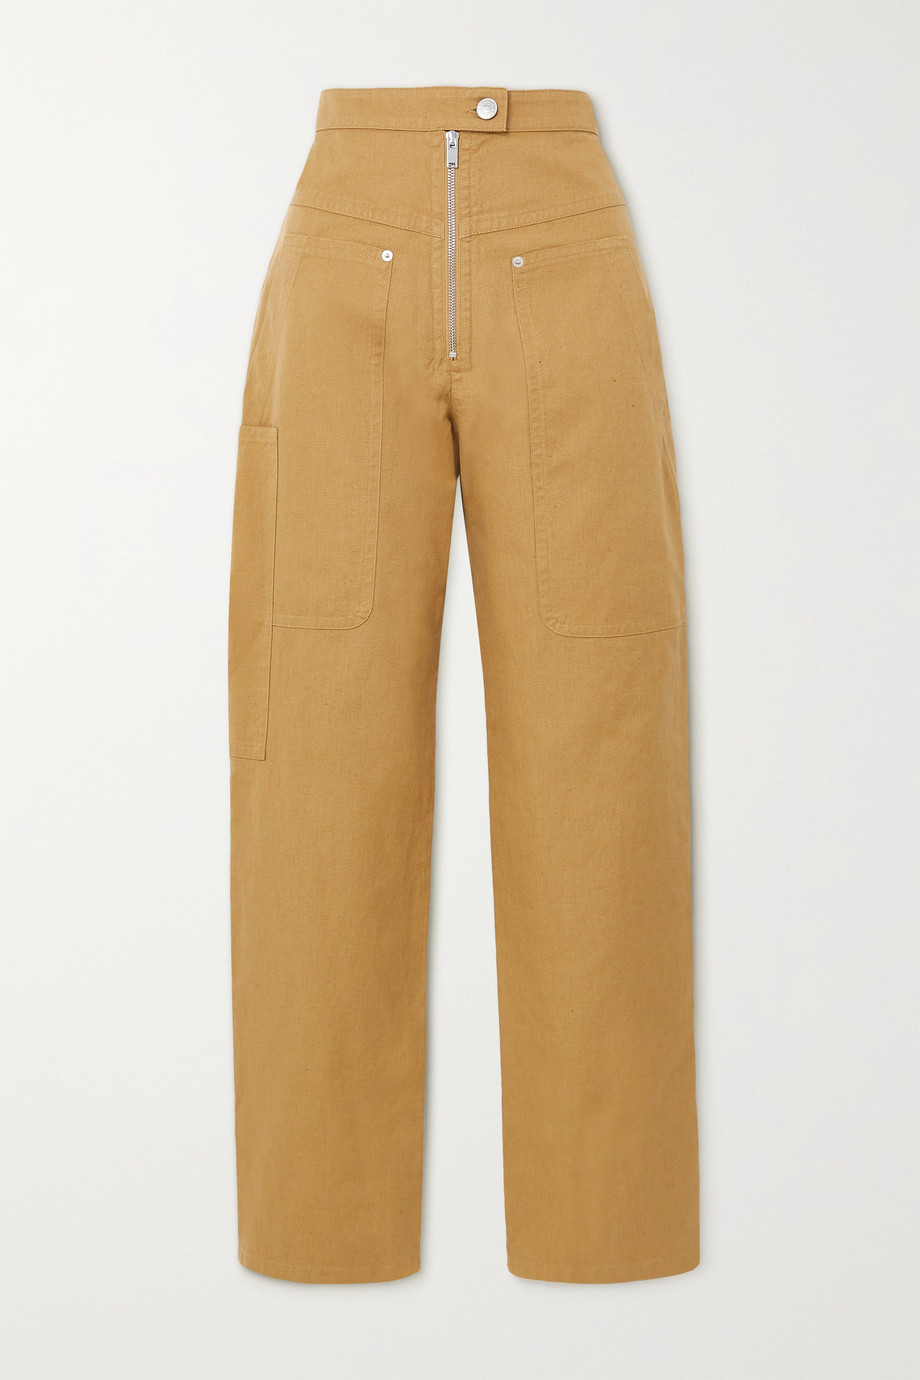 ISABEL MARANT ÉTOILE Phil cotton and linen-blend tapered pants